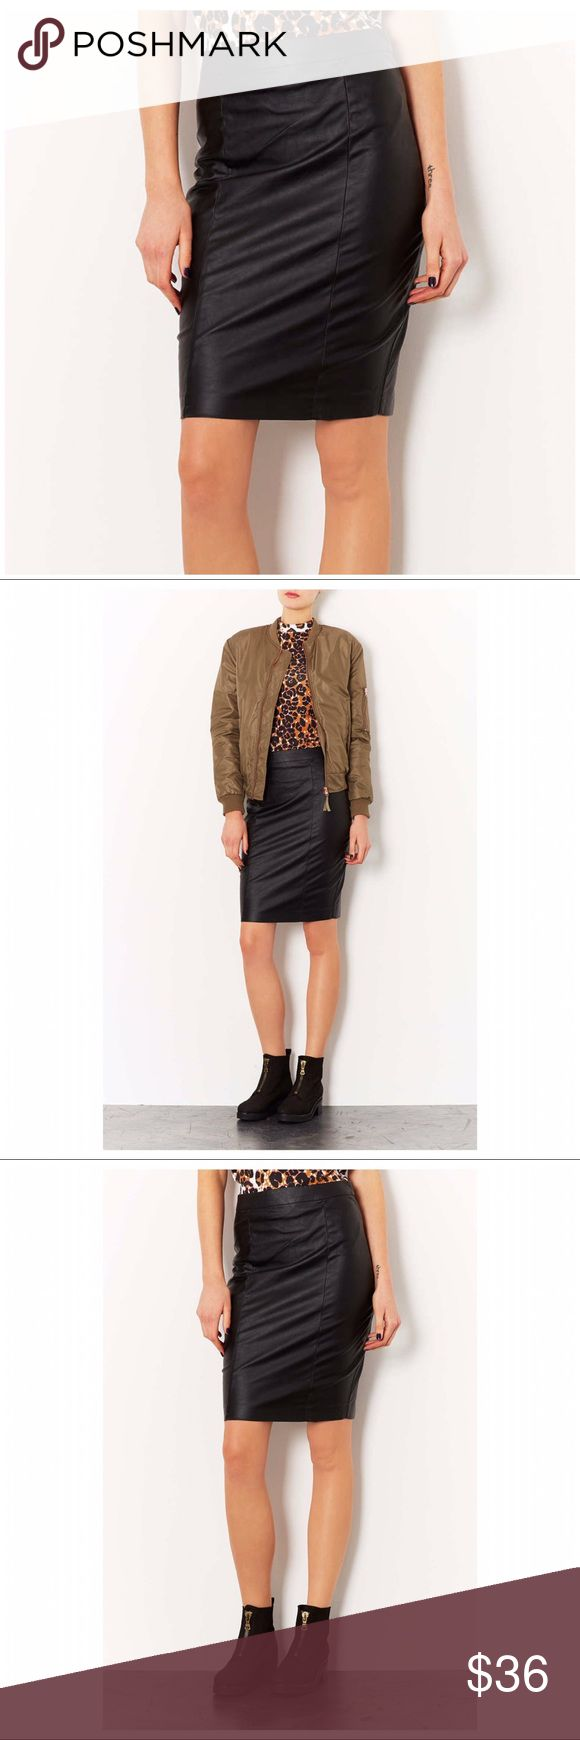 TOPSHOP FAUX LEATHER PENCIL SKIRT TOPSHOP SOFT FAUX LEATHER PENCIL SKIRT ~ Office to Date Night in this stunning skirt ~ #0898 🚫Trades or Holds ✅Use offer option ❤️10% off Bundles Topshop Skirts Pencil